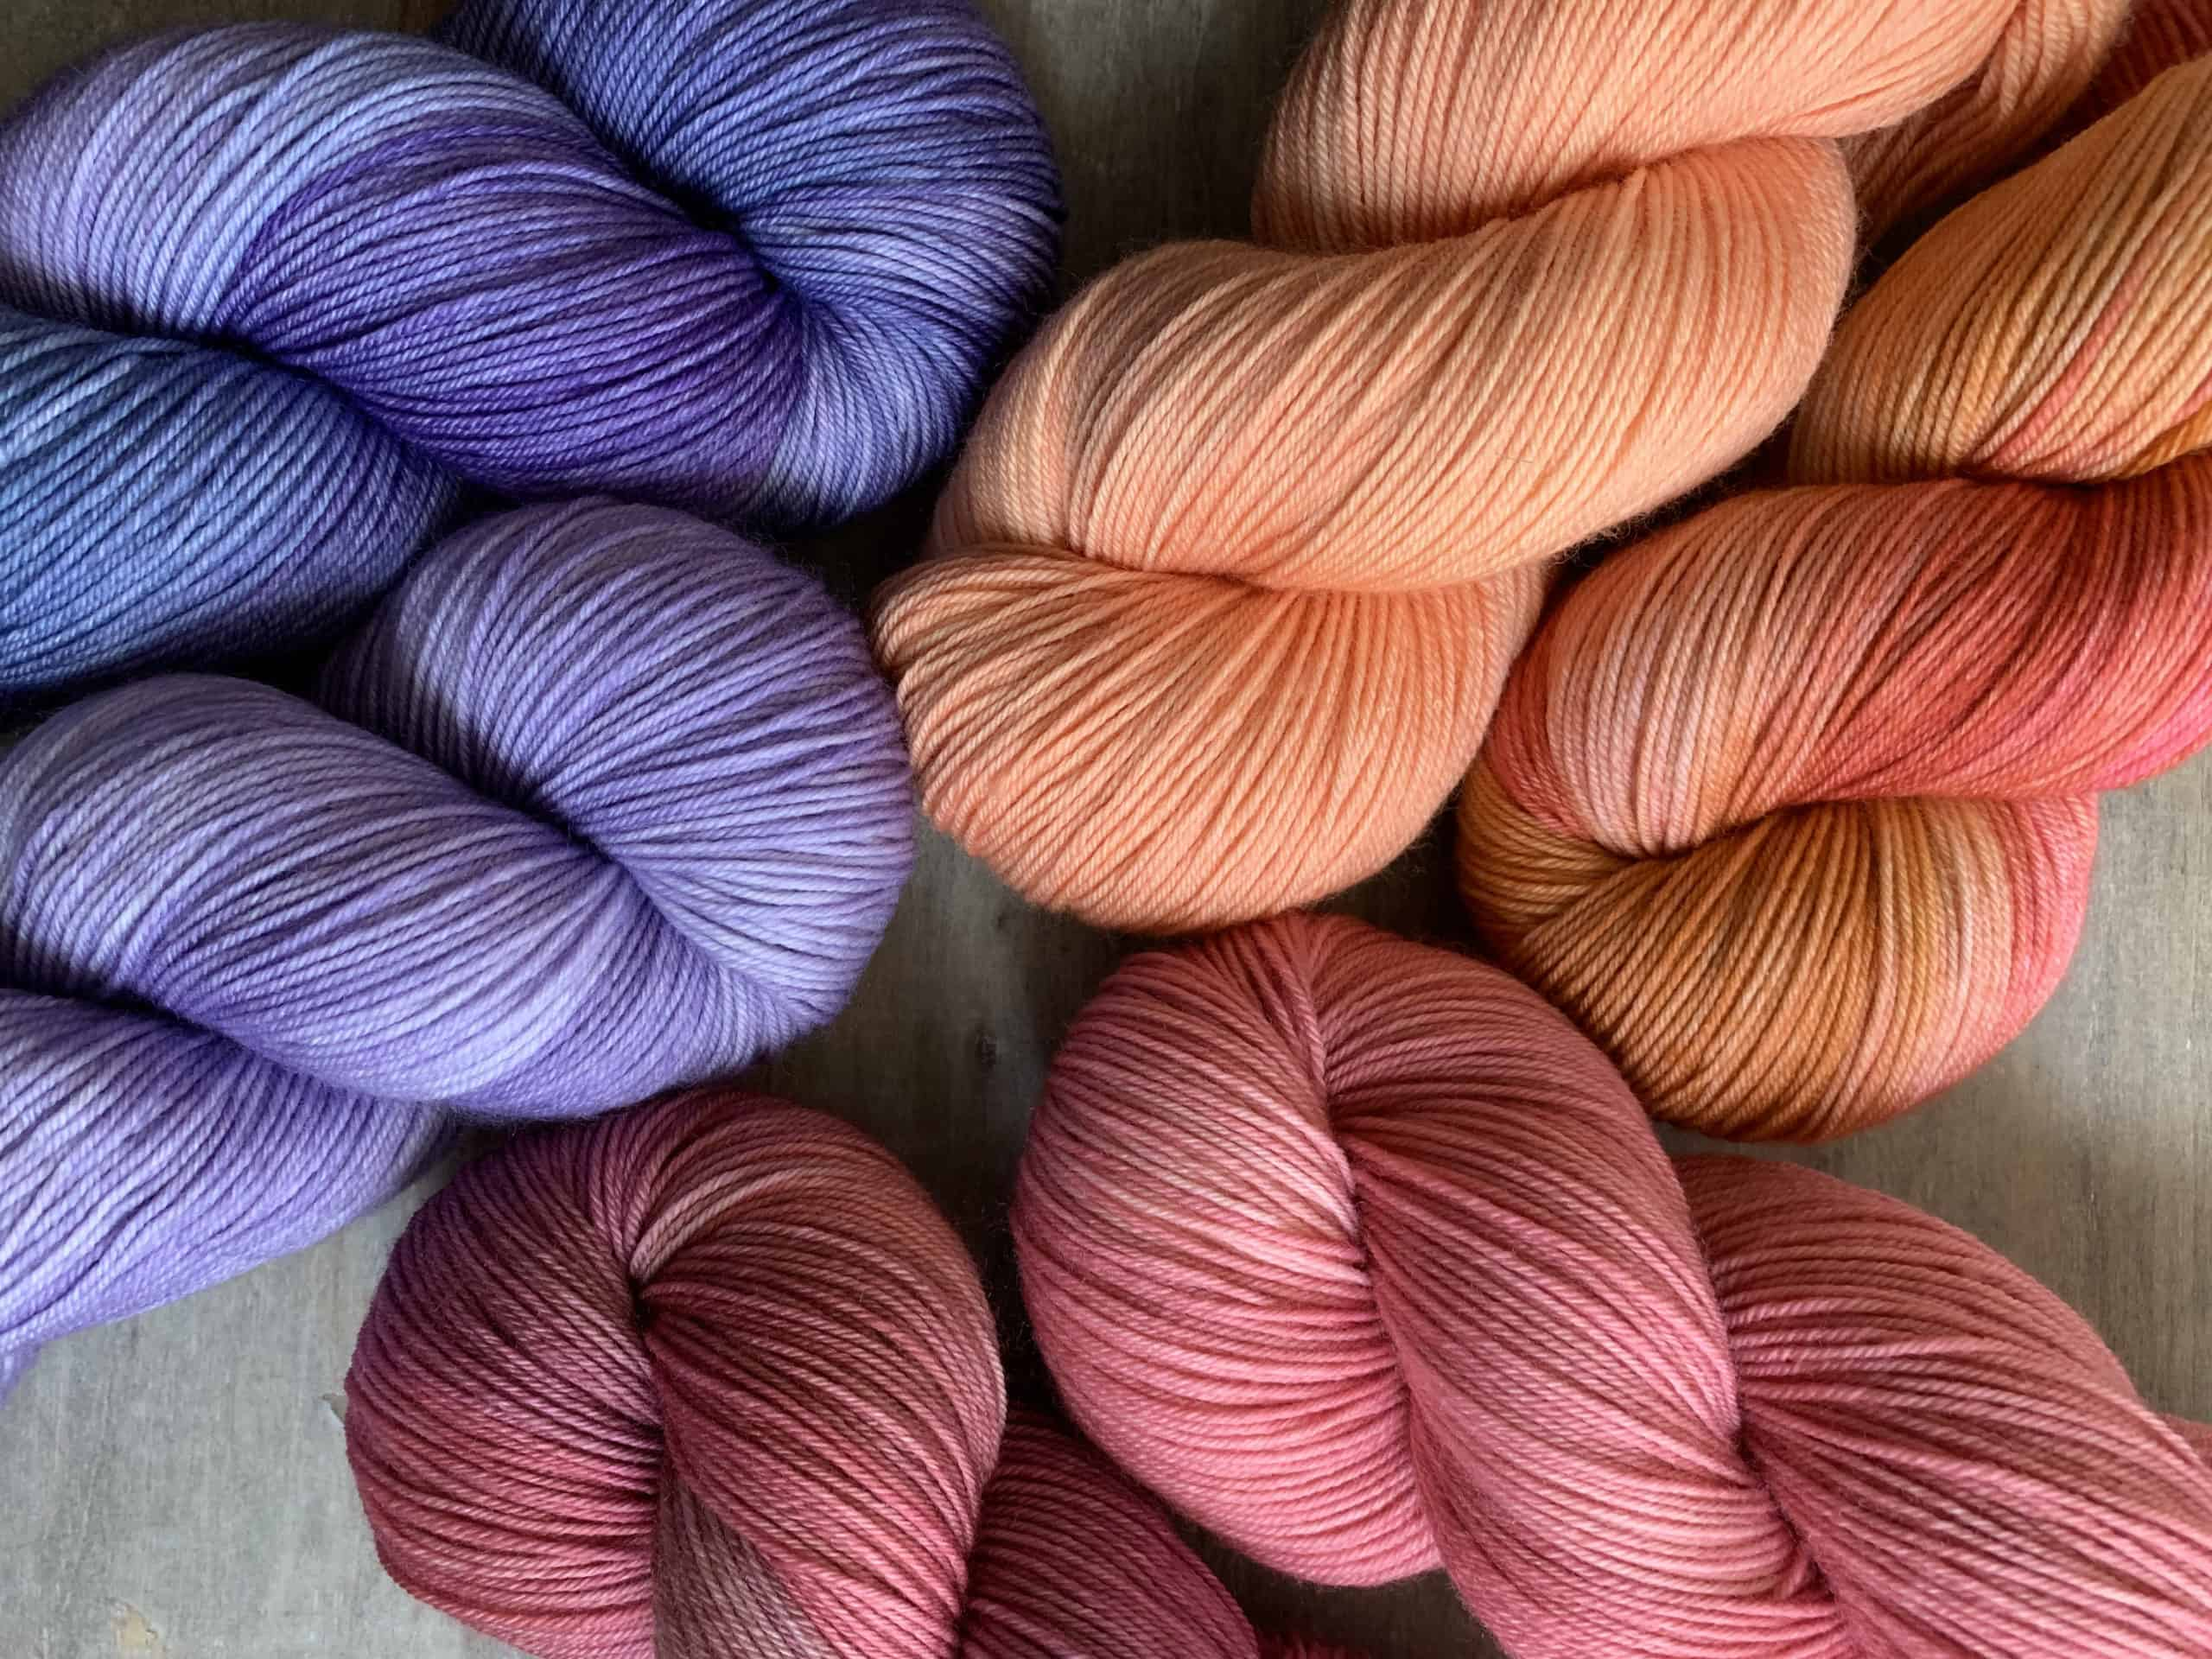 Purple, orange and pink yarn.